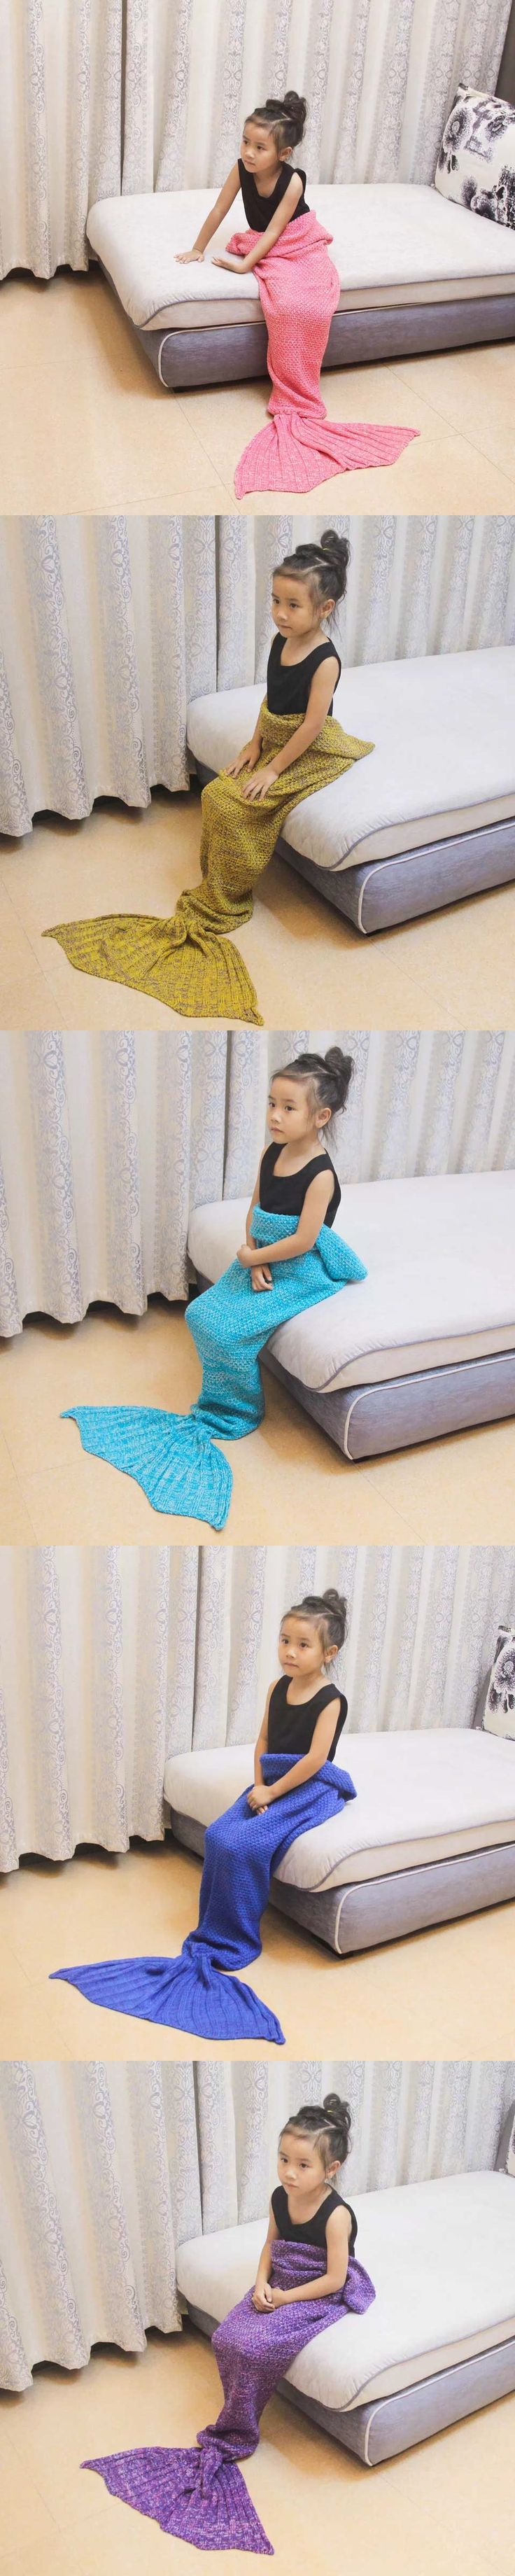 Summitkids Yarn Knitted Mermaid Tail Blanket Super Soft Sleeping Bed Handmade Crochet Anti-Pilling Portable Mermaid Blankets